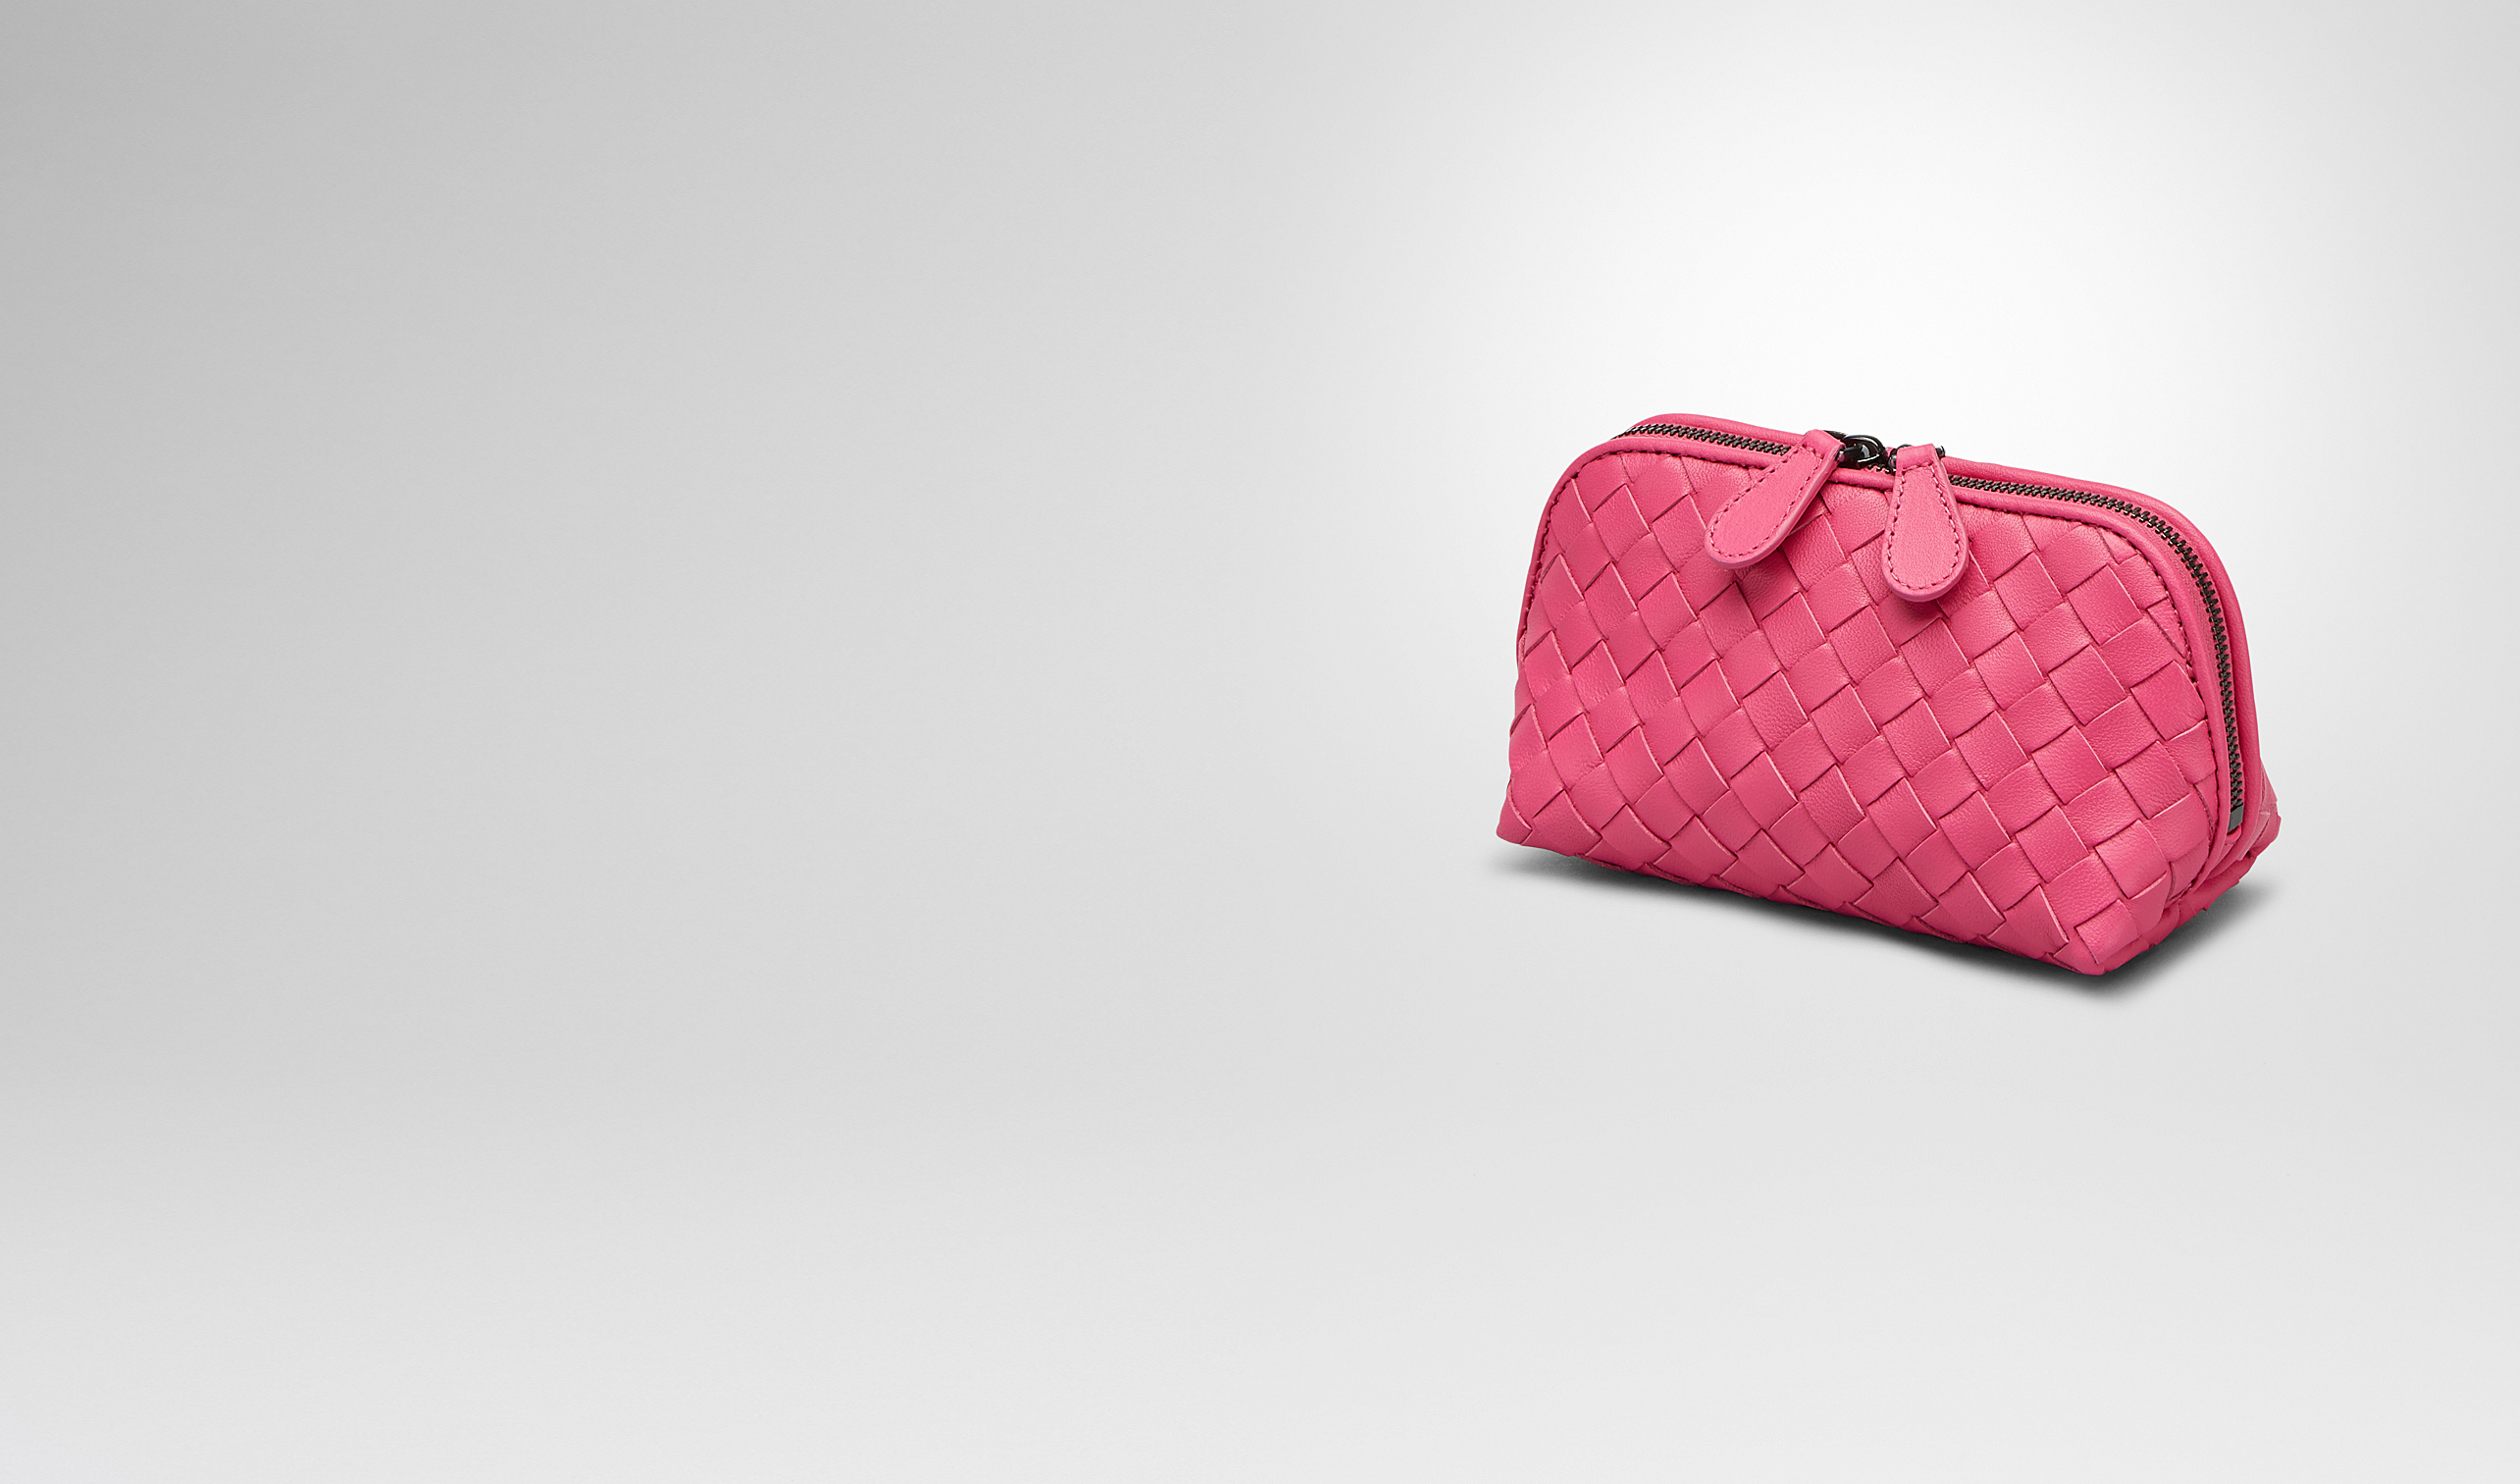 BOTTEGA VENETA Altro accessorio in pelle D BEAUTY CASE ROSA SHOCK IN NAPPA INTRECCIATA pl